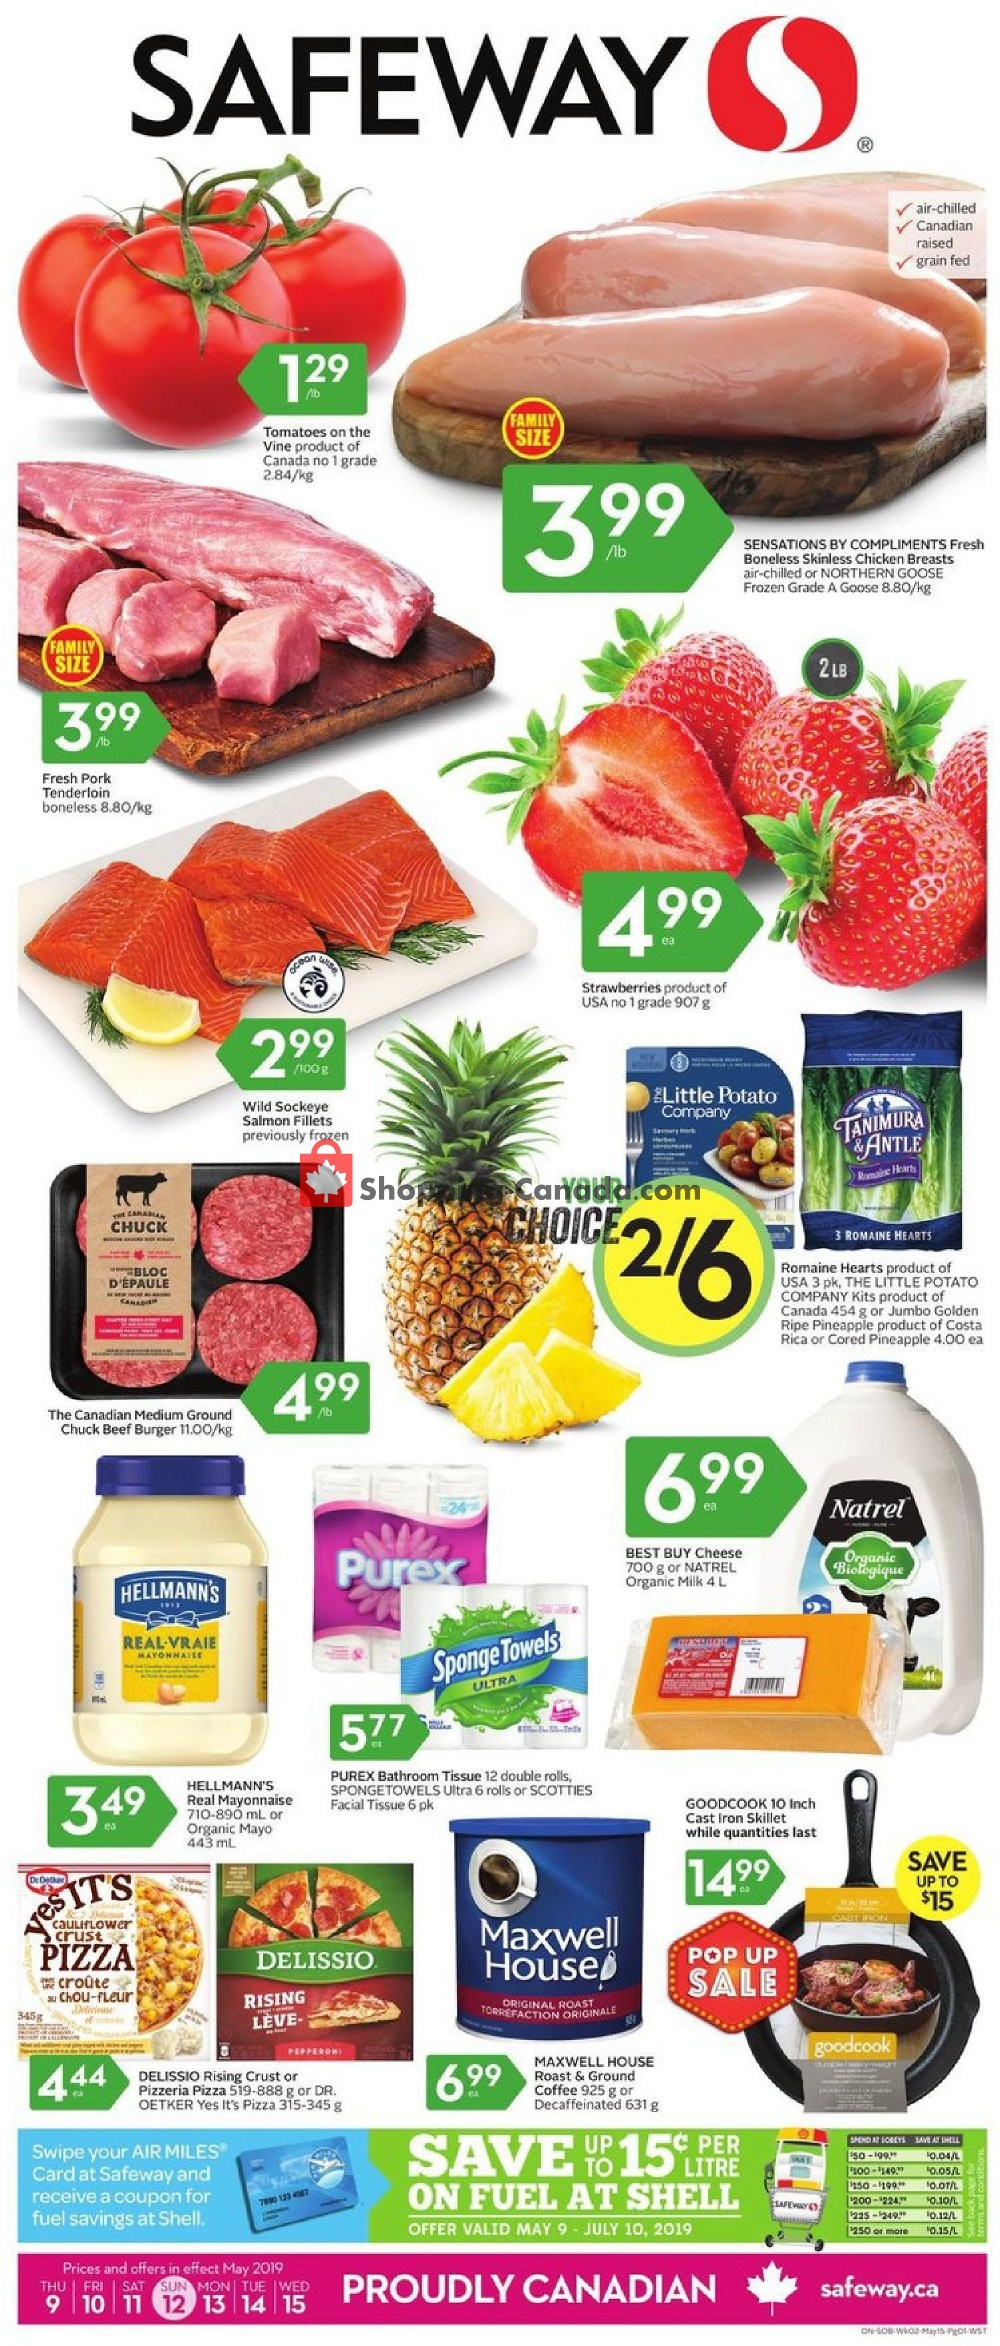 Flyer Safeway Canada - from Thursday May 9, 2019 to Wednesday May 15, 2019